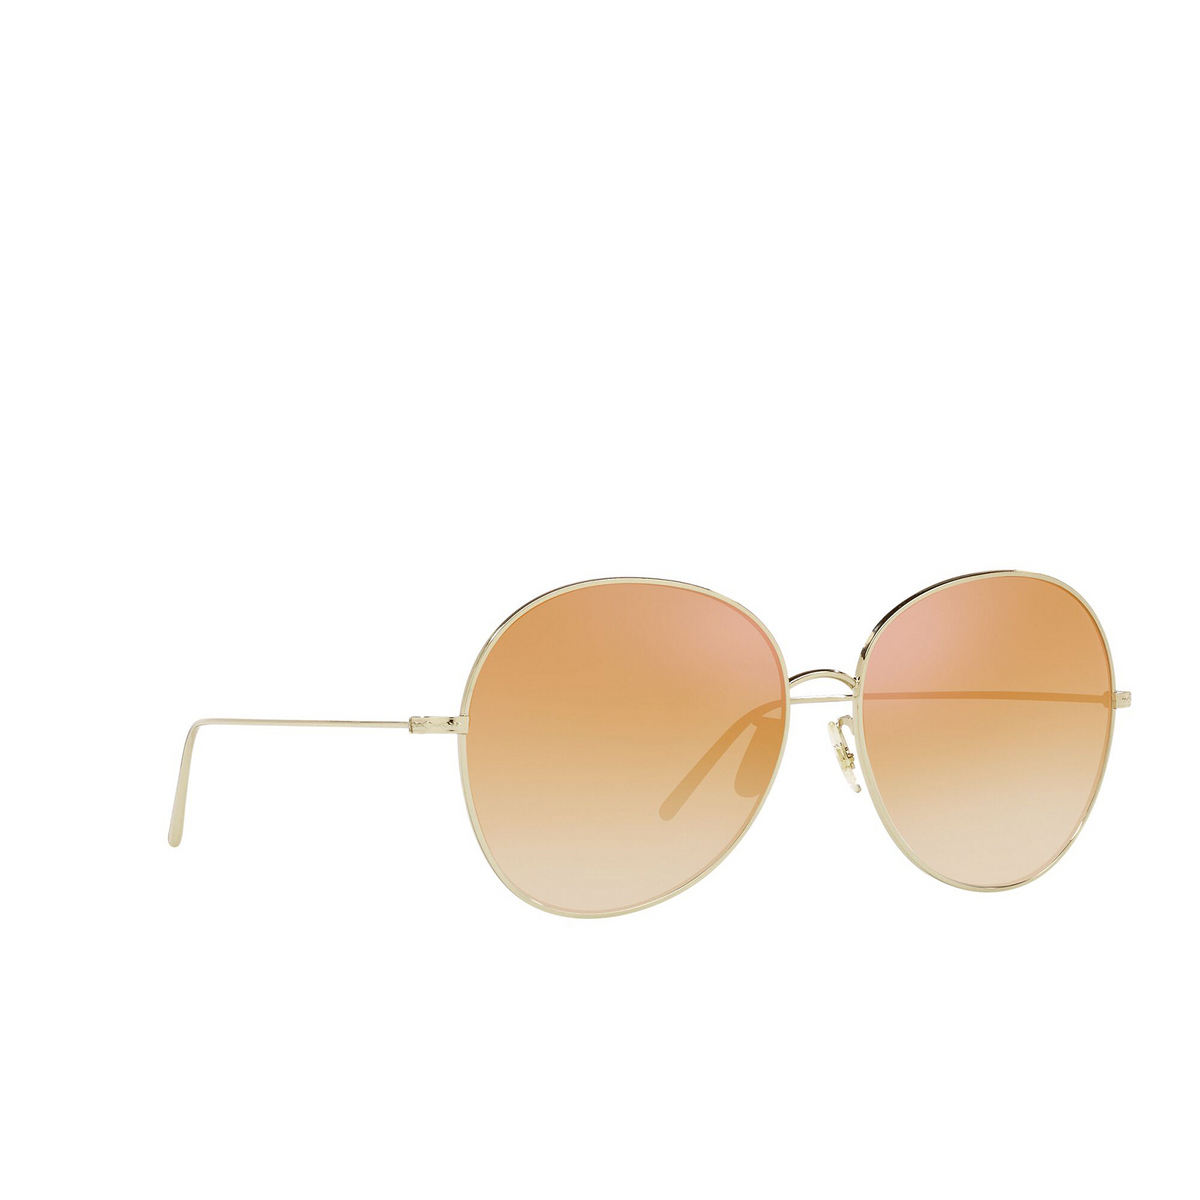 Oliver Peoples® Butterfly Sunglasses: Ysela OV1289S color Soft Gold 50357K - three-quarters view.